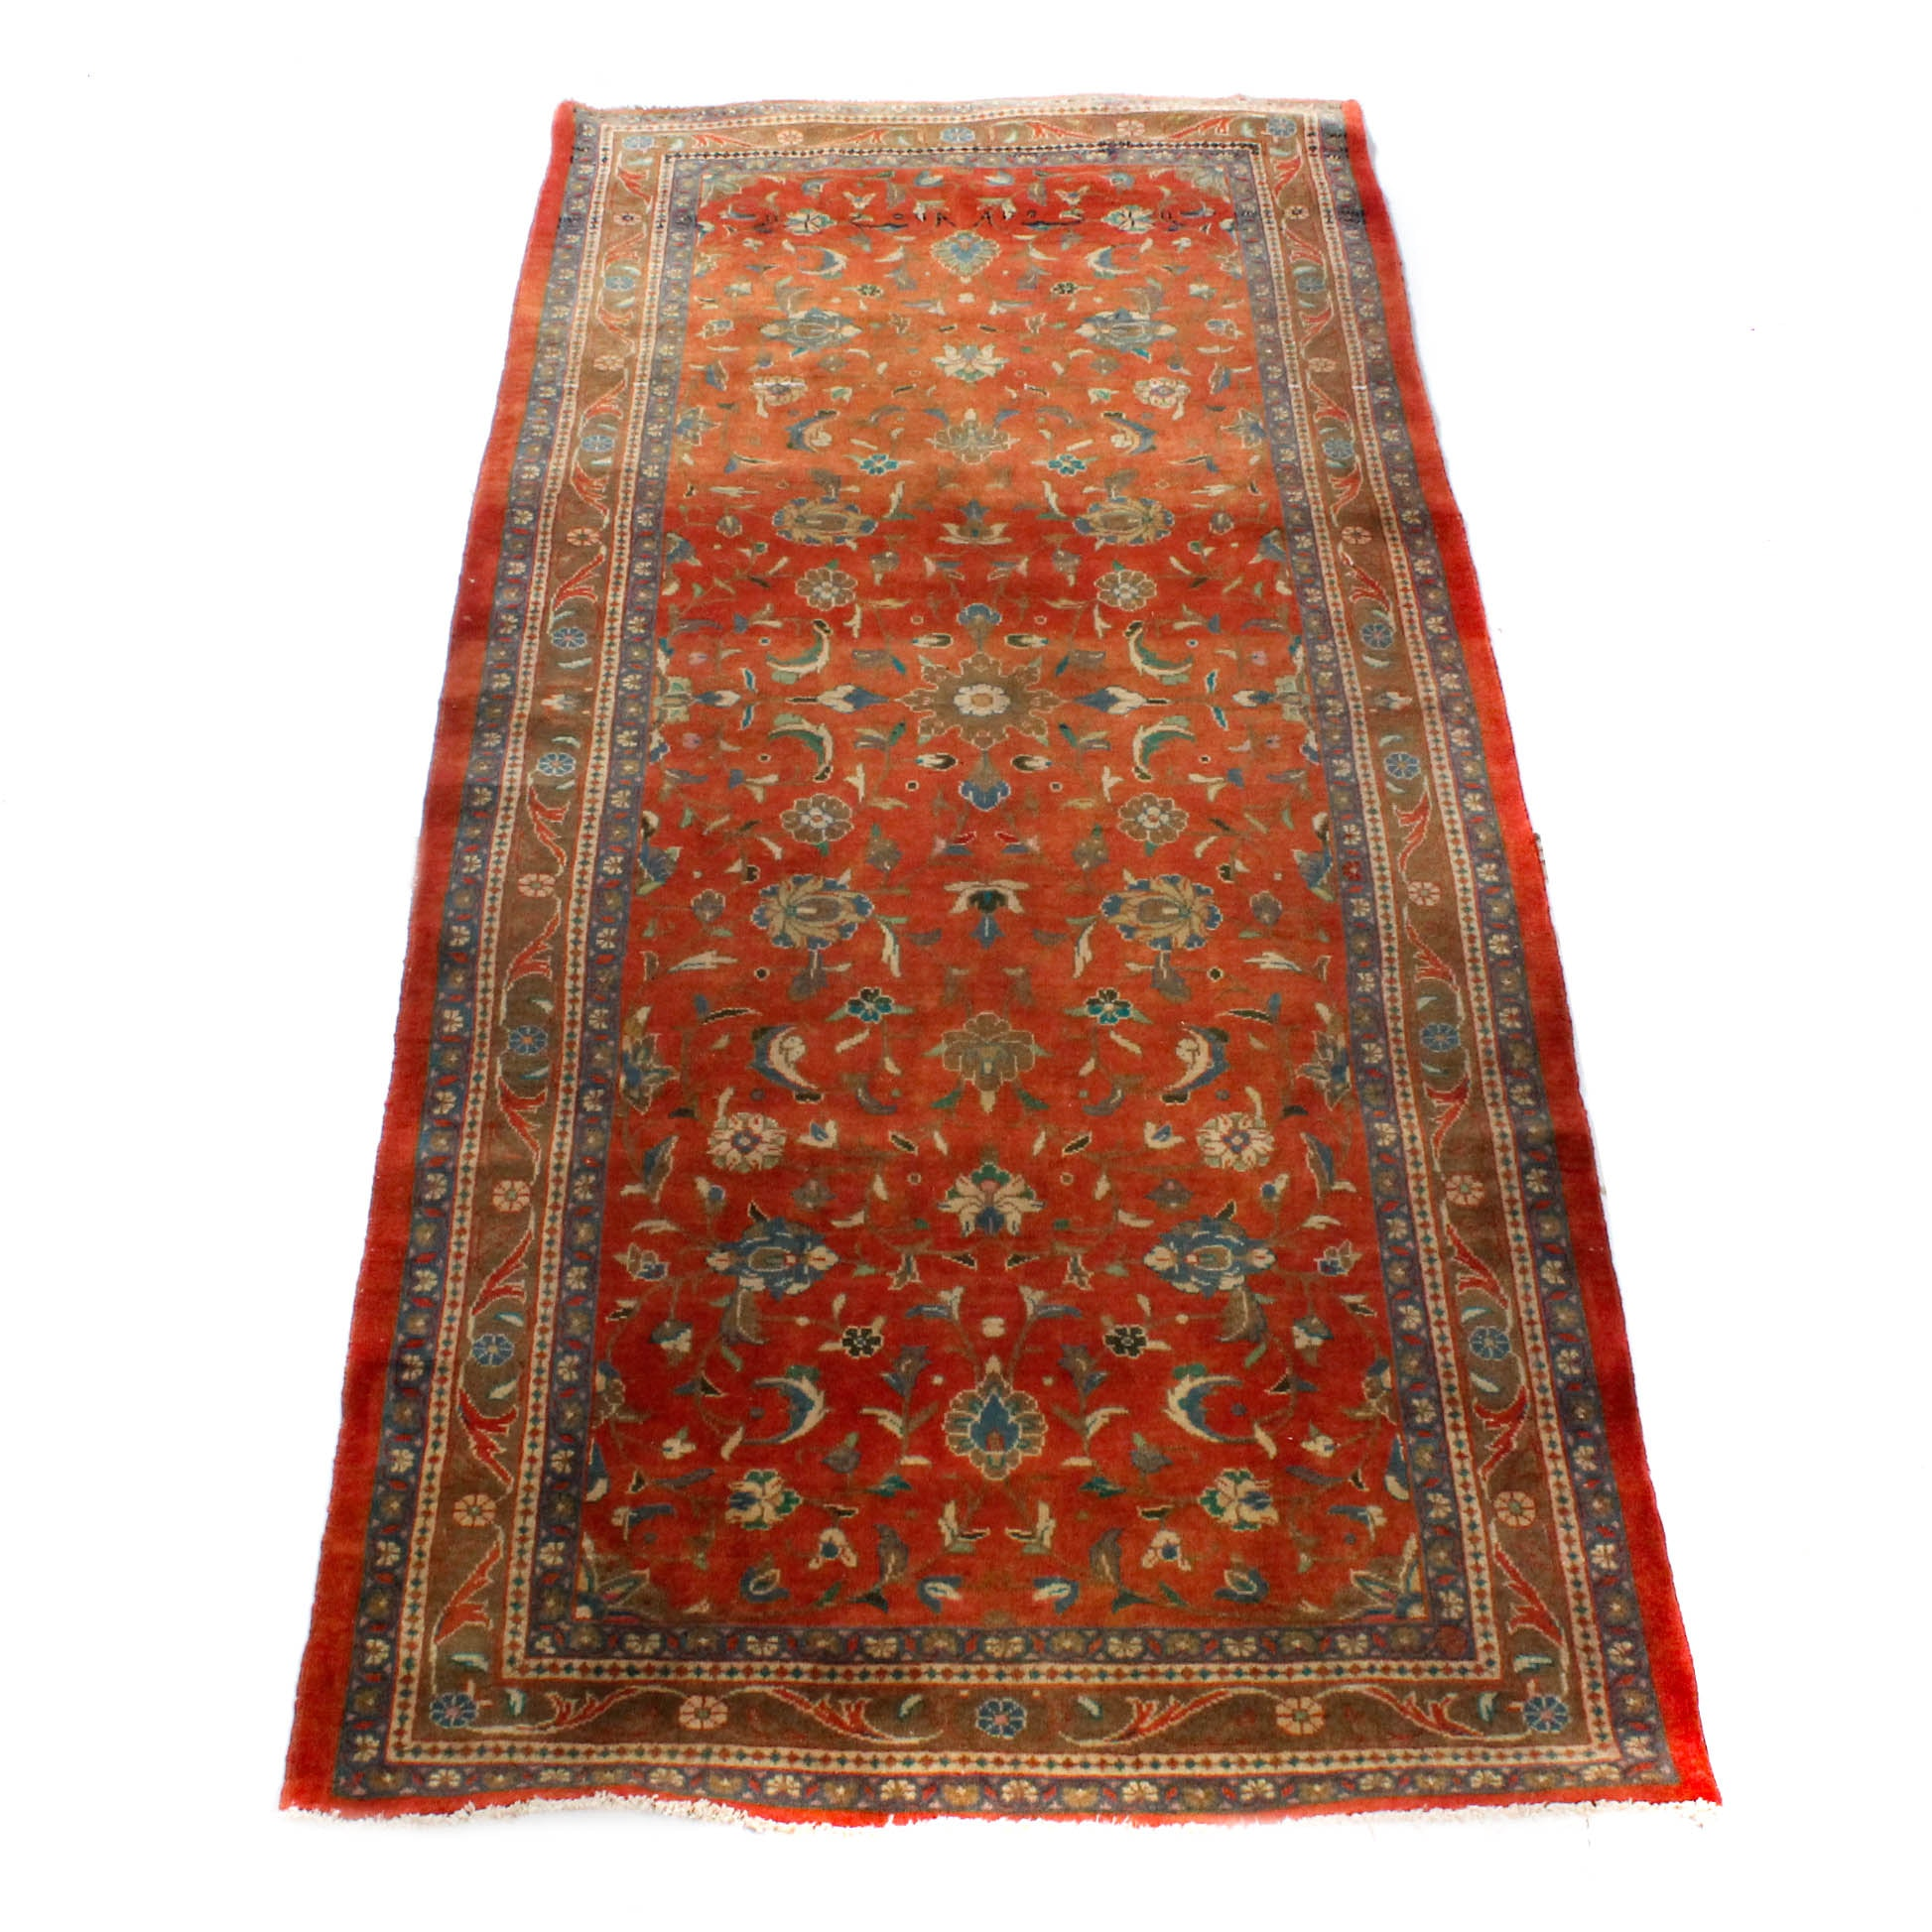 Vintage Hand-Knotted Persian Sarouk Rug